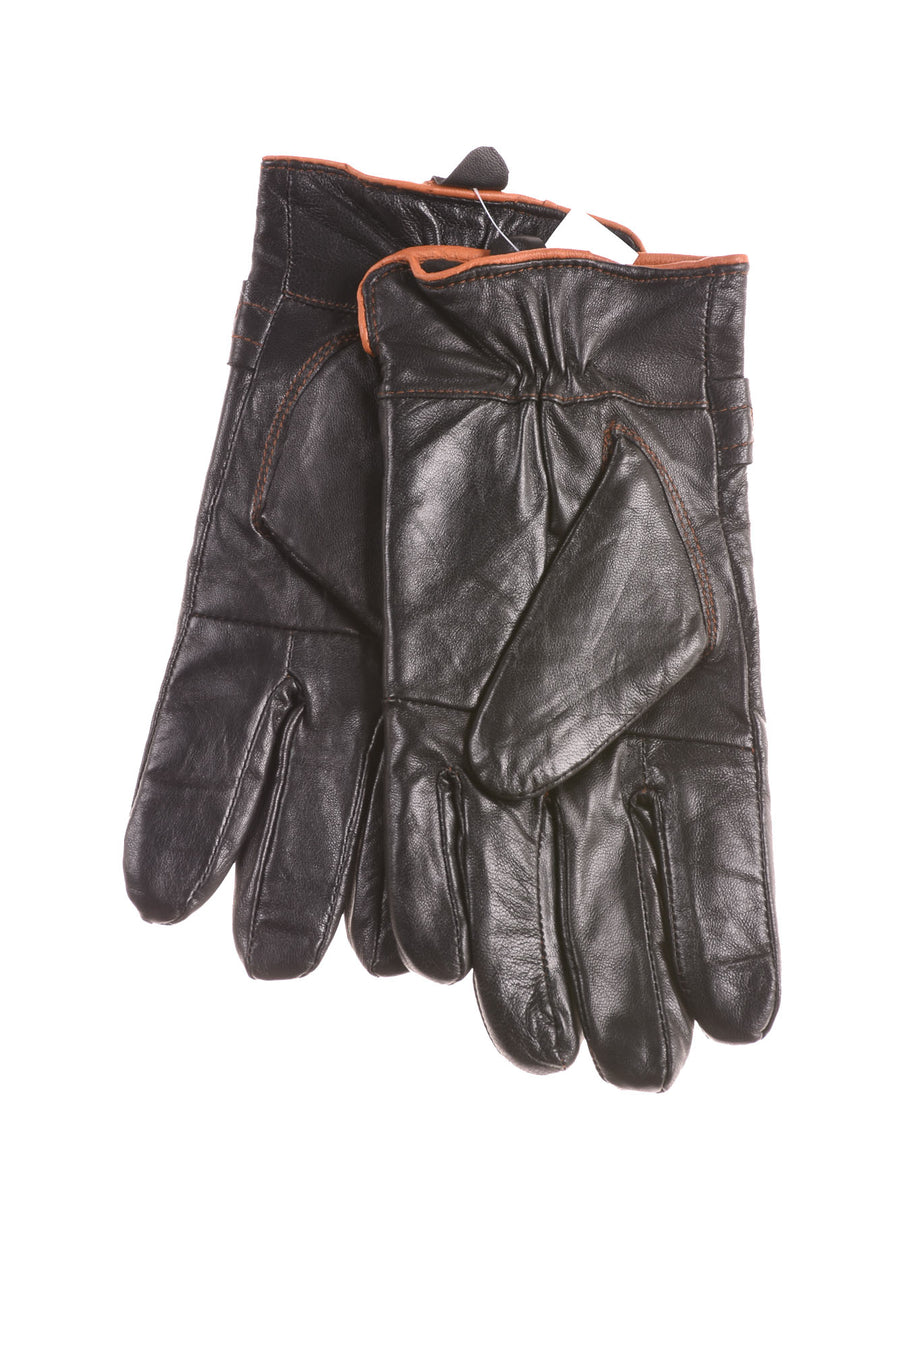 Men's Gloves By No Brand